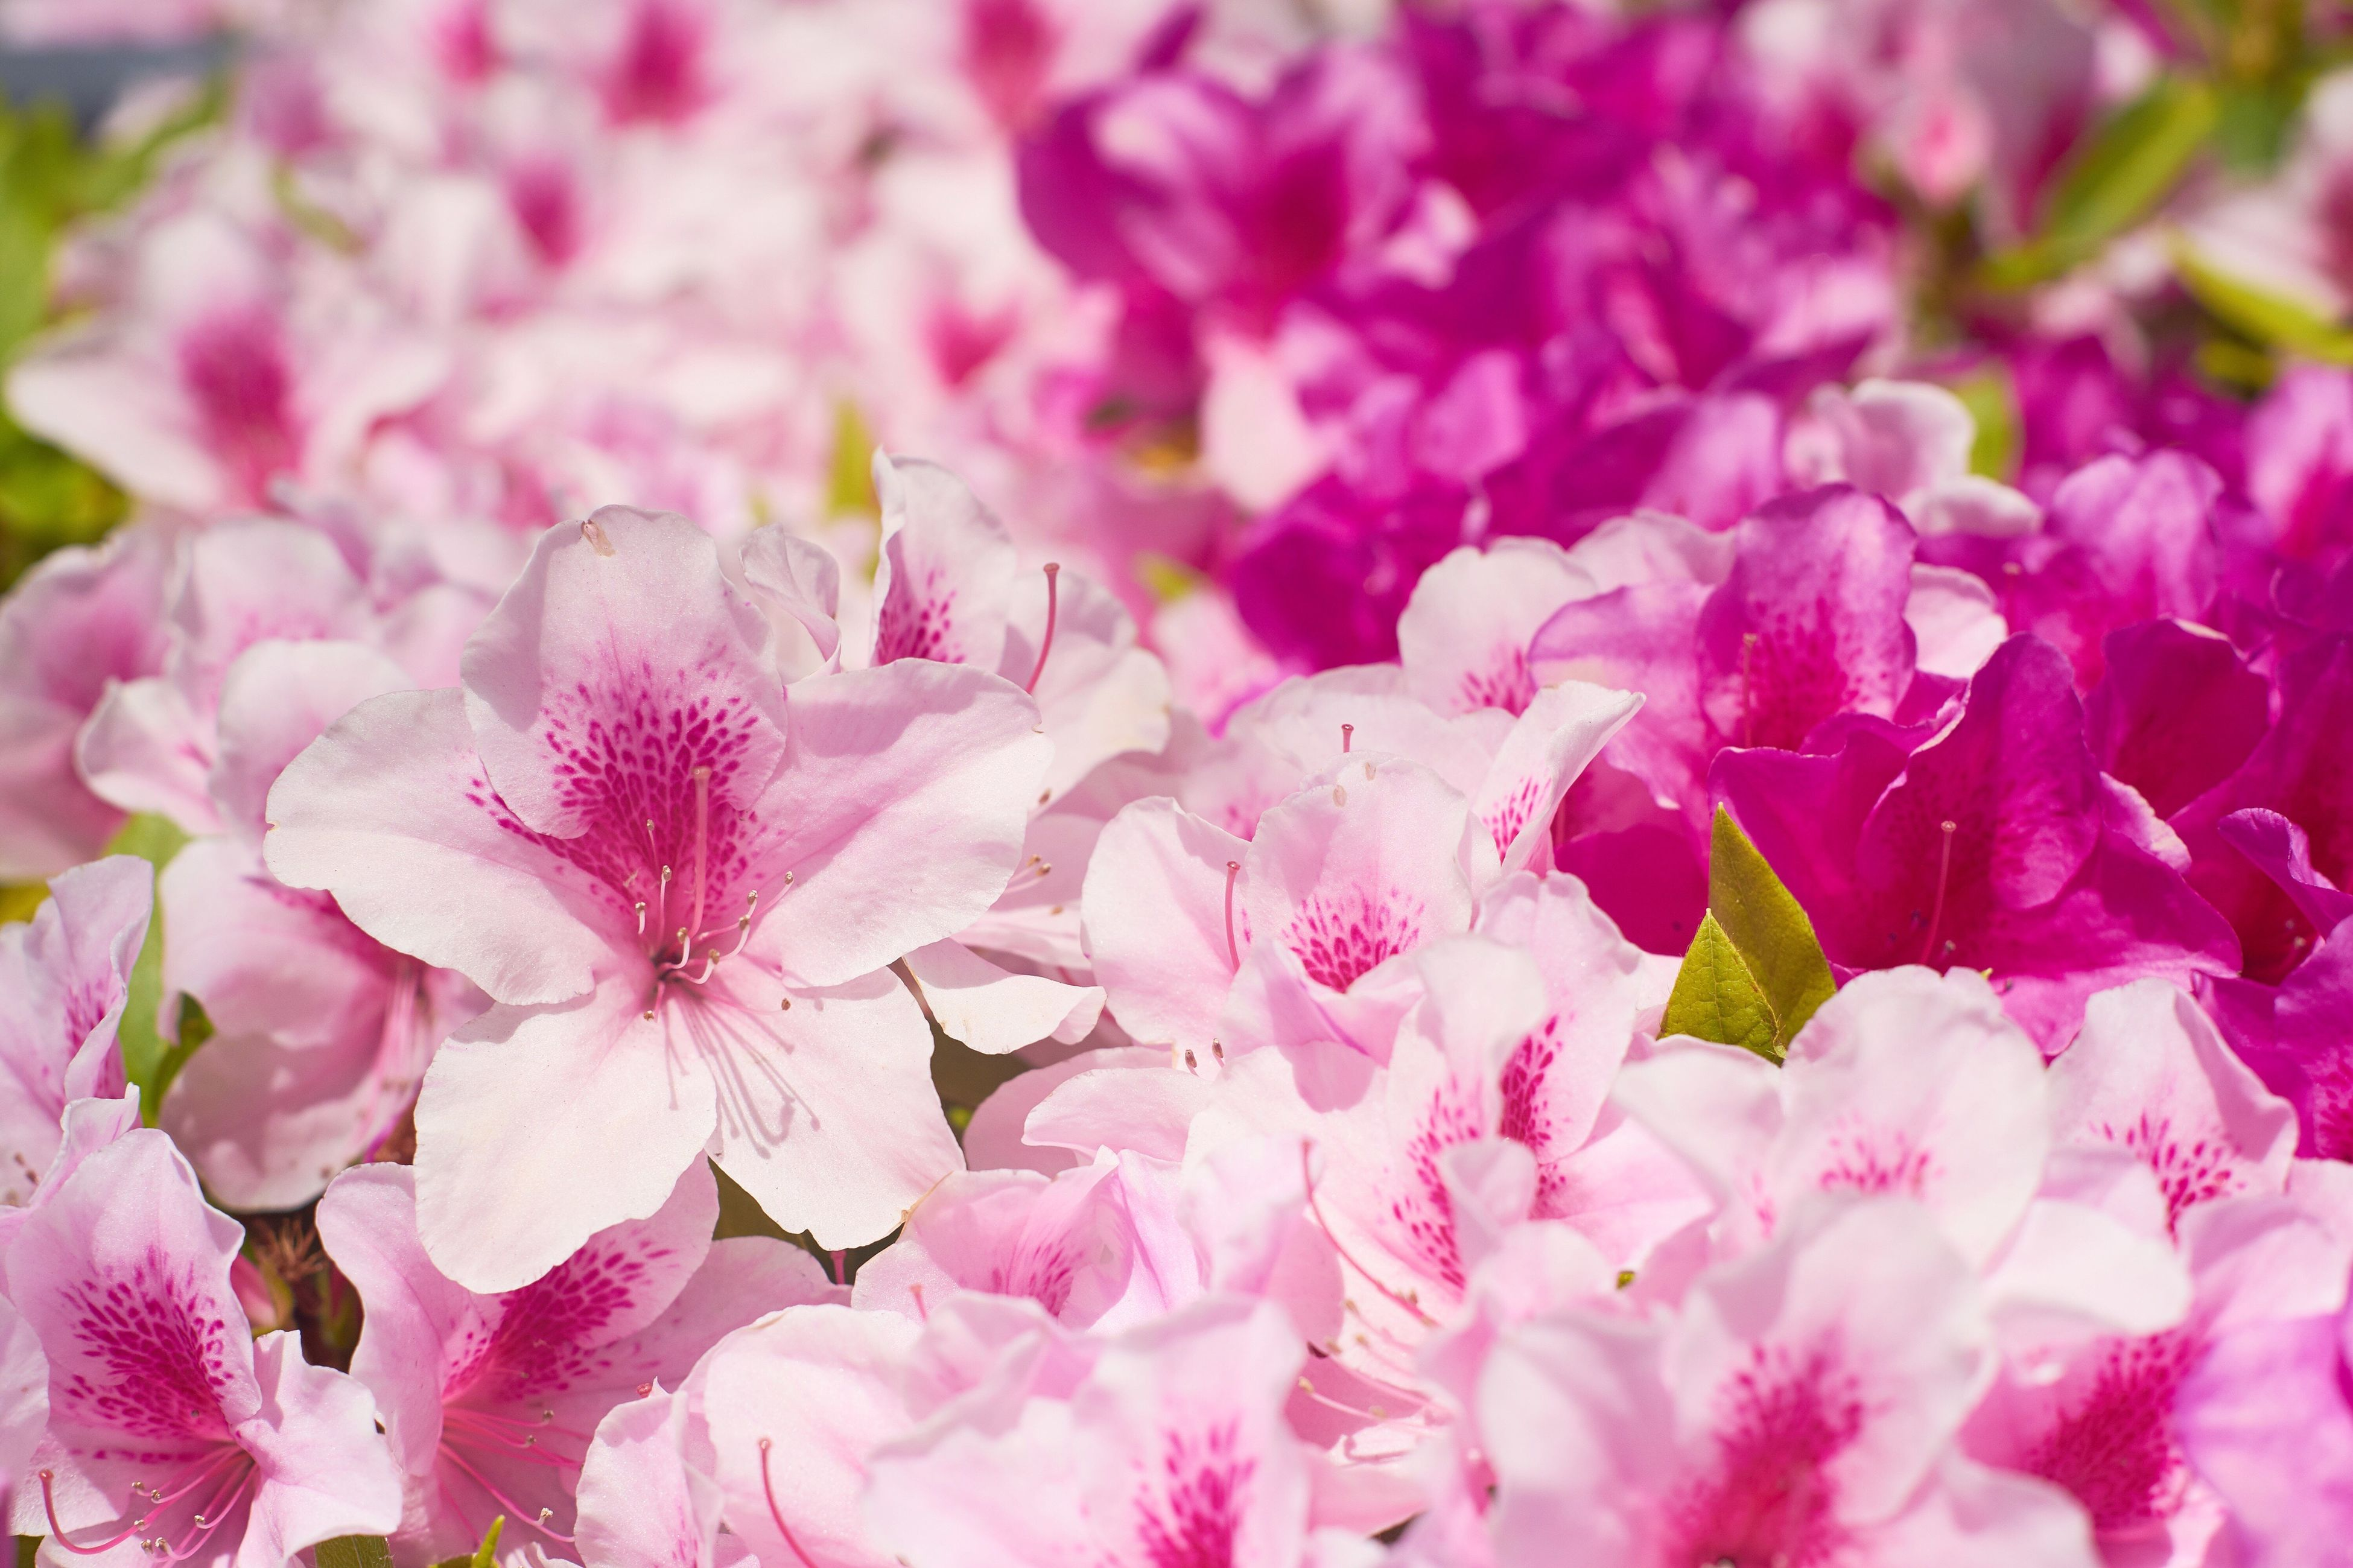 flower, pink color, fragility, petal, beauty in nature, freshness, nature, no people, selective focus, springtime, growth, blossom, flower head, plant, backgrounds, close-up, full frame, outdoors, day, blooming